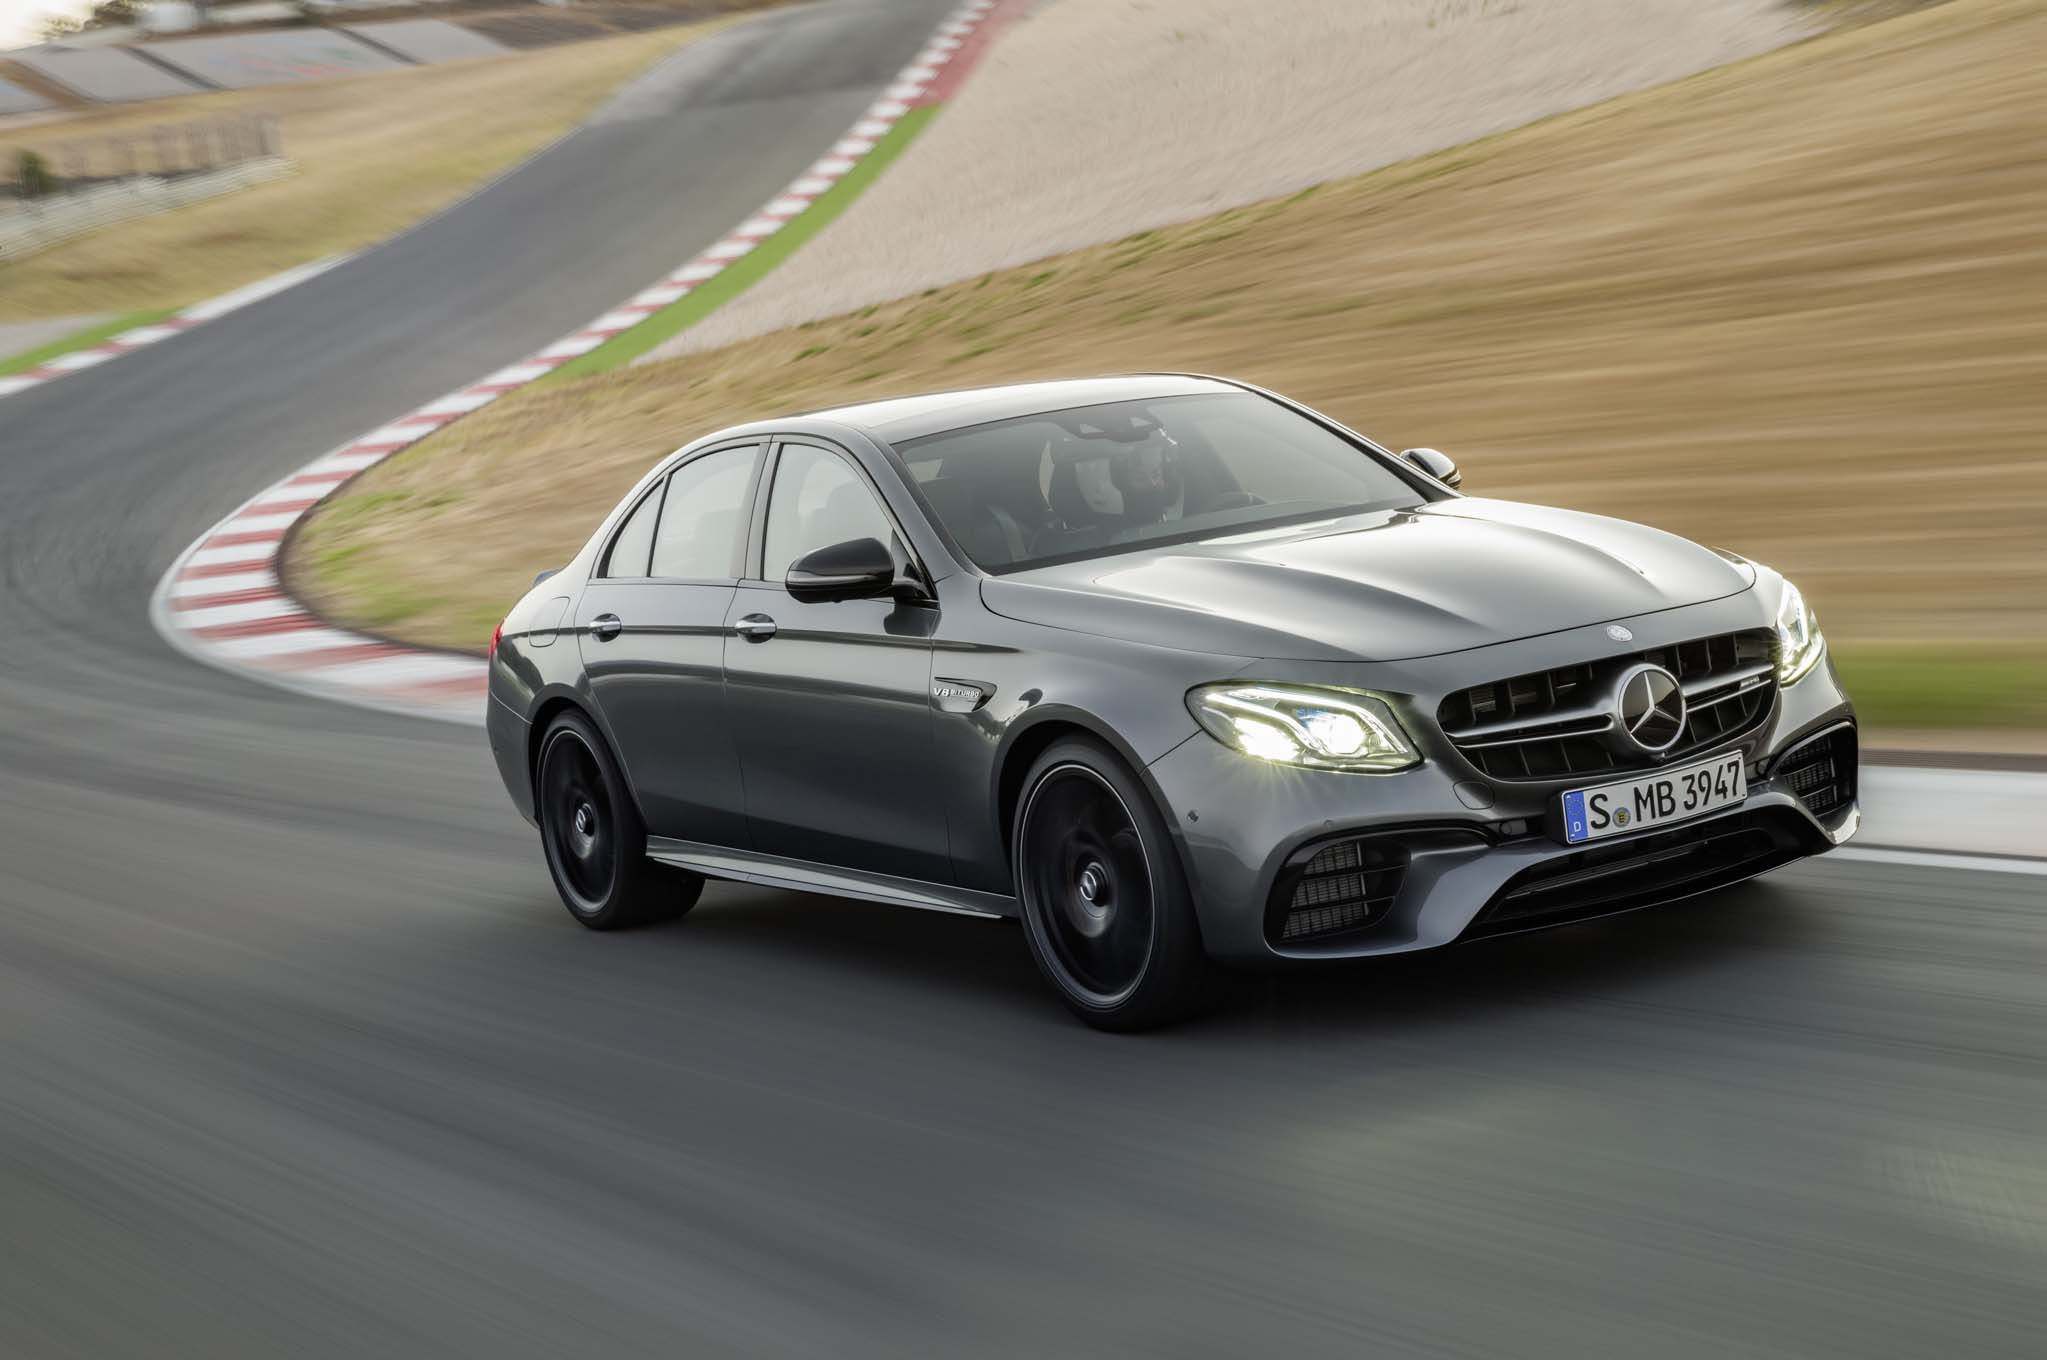 2018 Mercedes AMG E63 S Front Three Quarter In Motion 02